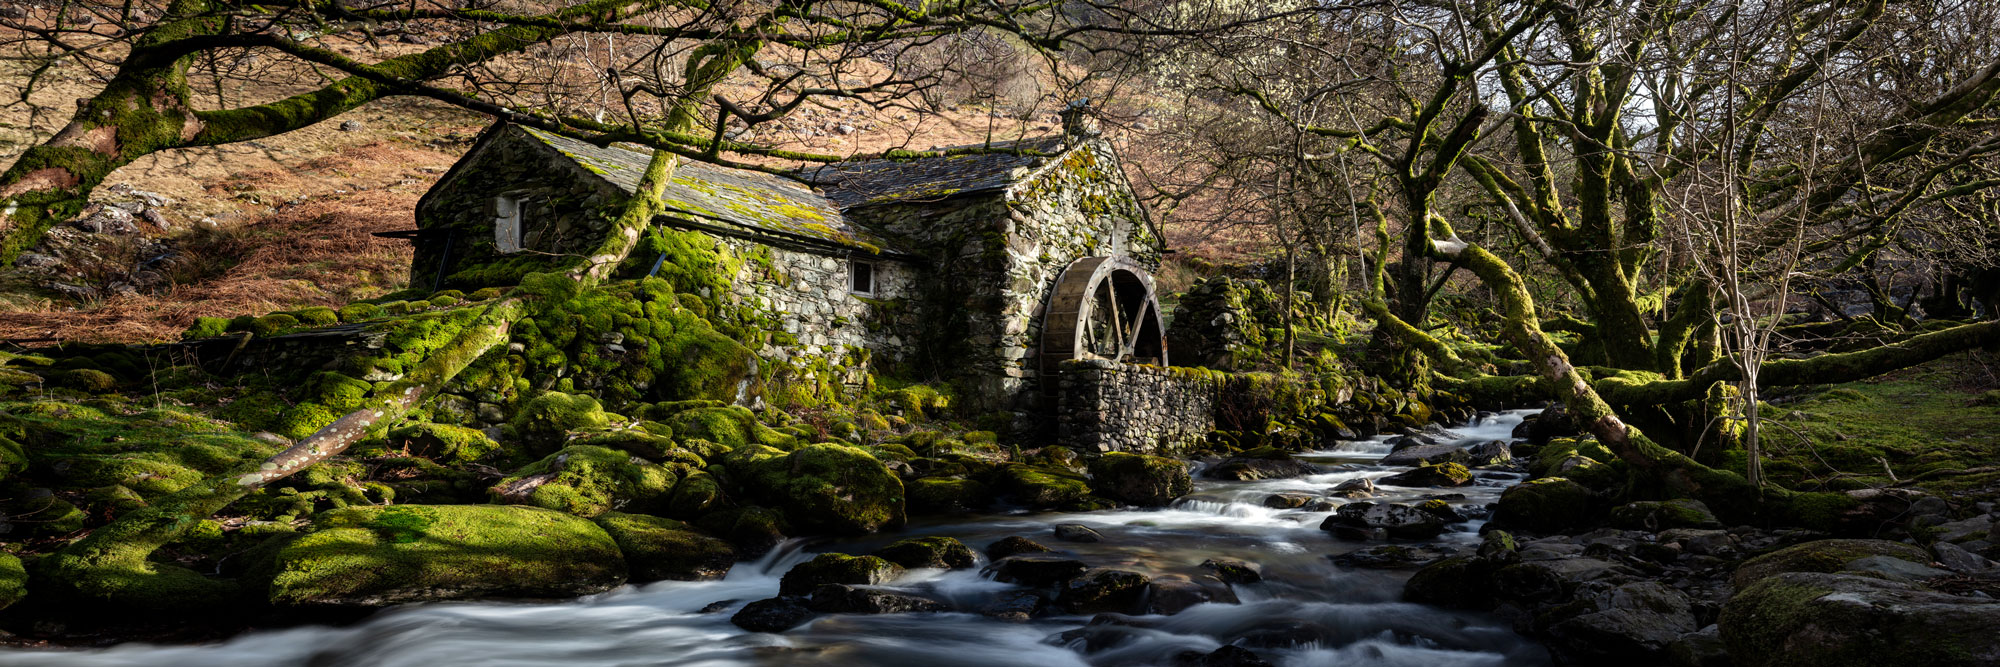 An old watermill in Borrowdale valley Lake District